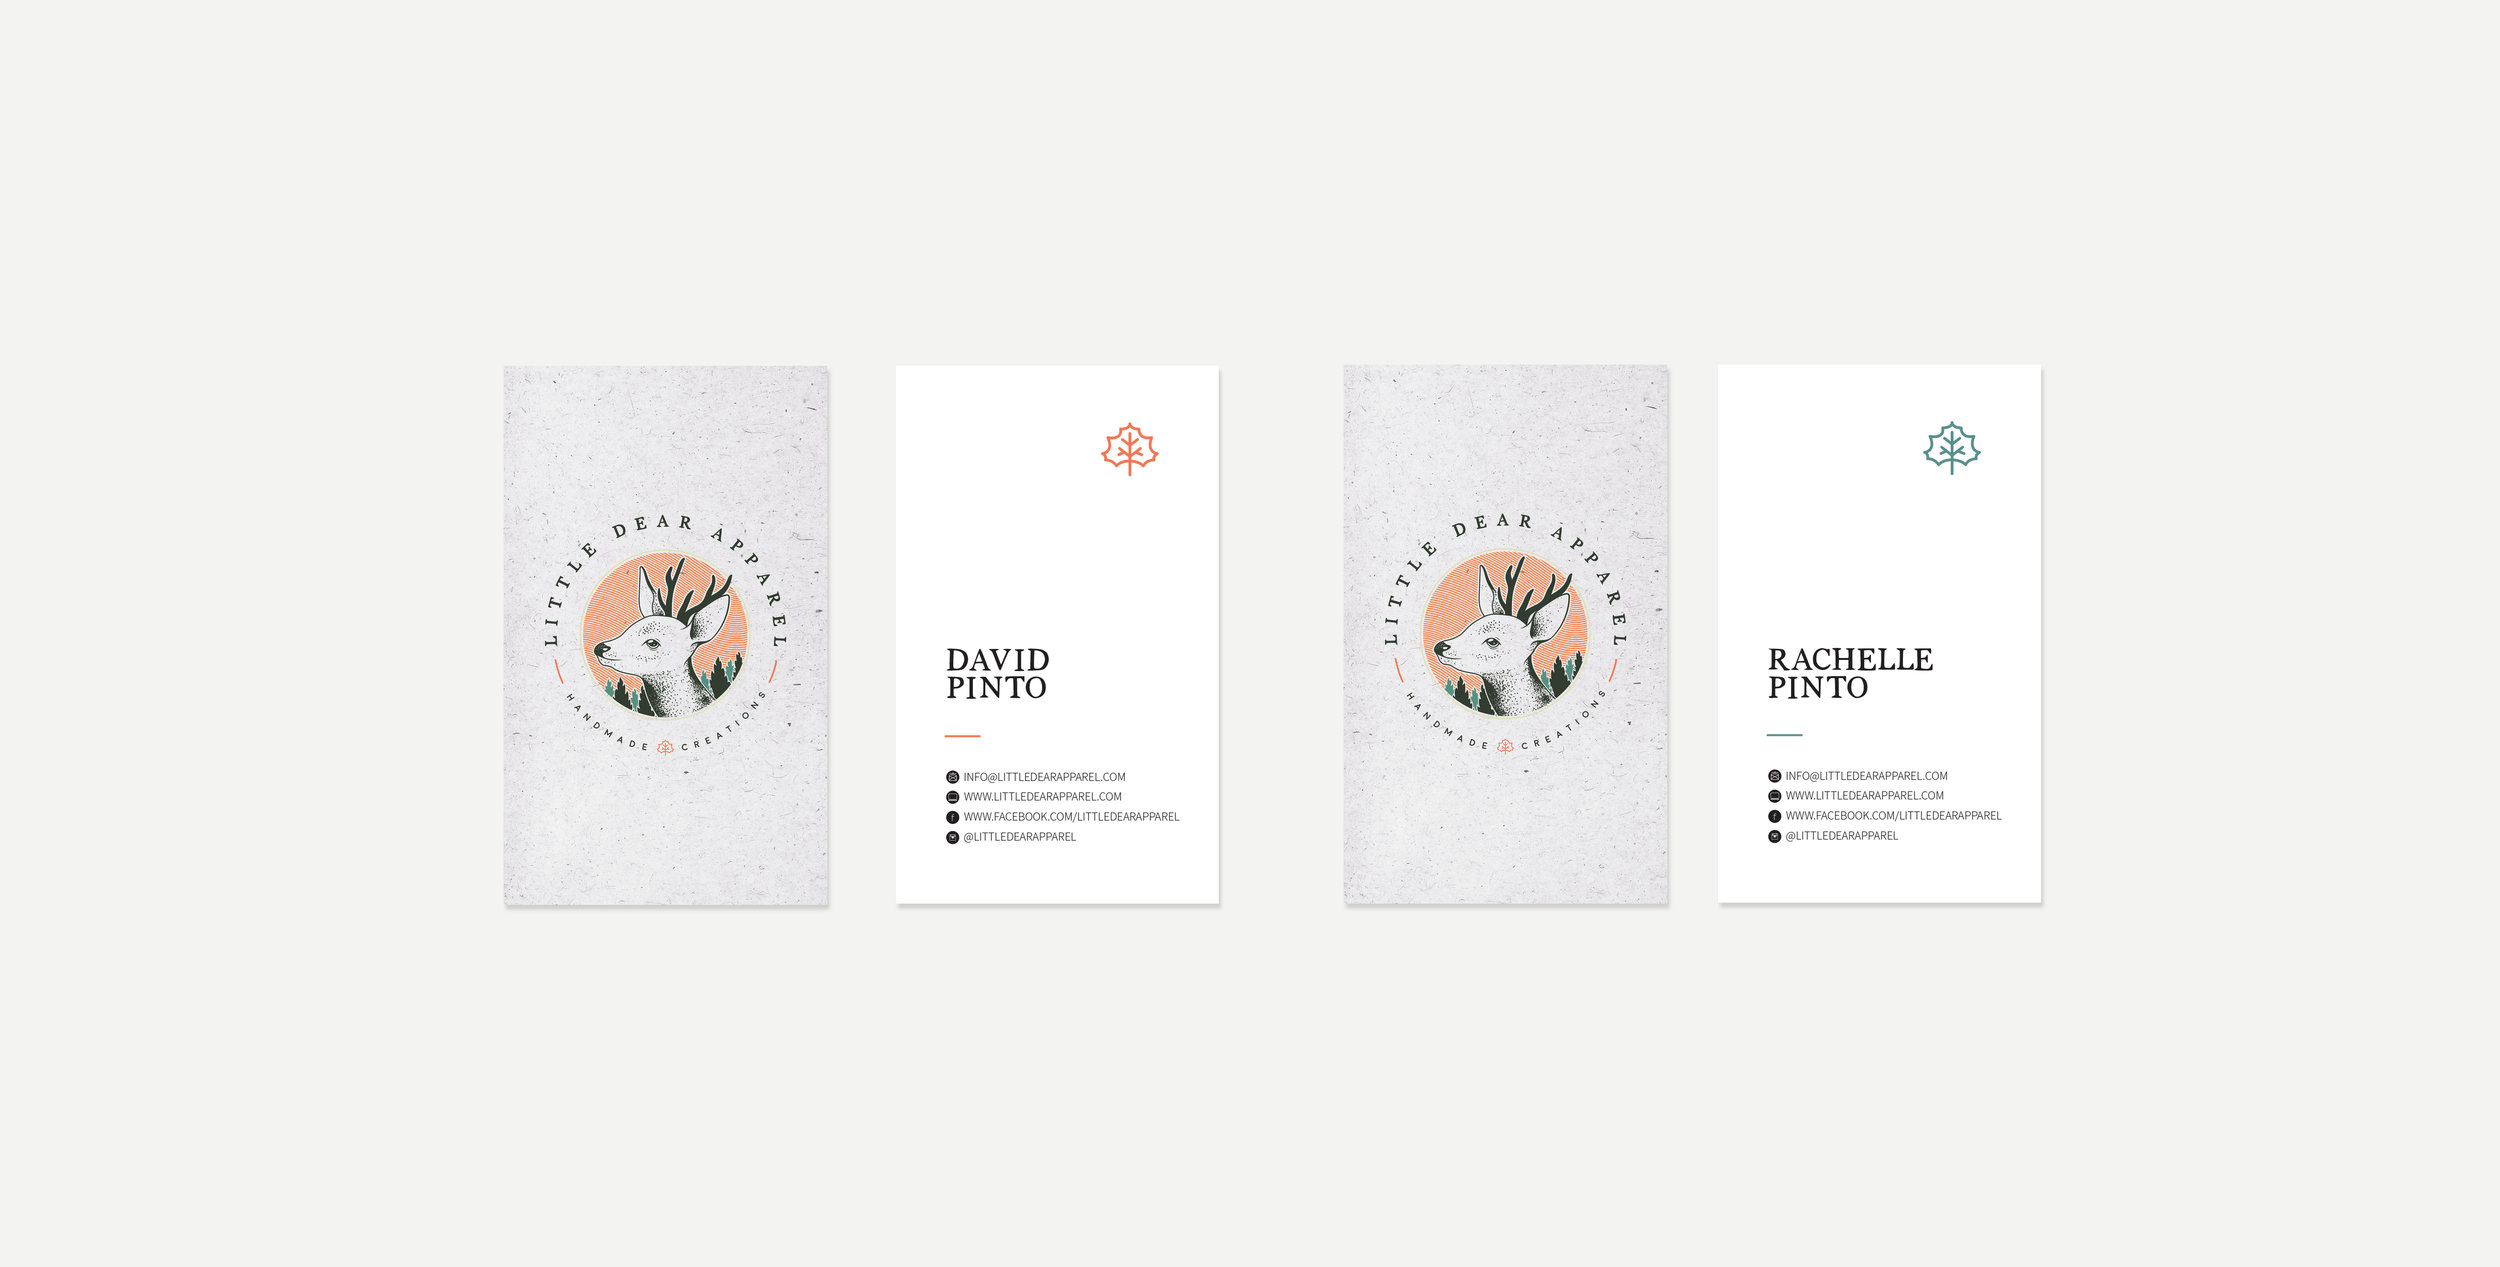 little-dear-apparel-winnipeg-branding-design-business-cards-clover-and-crow